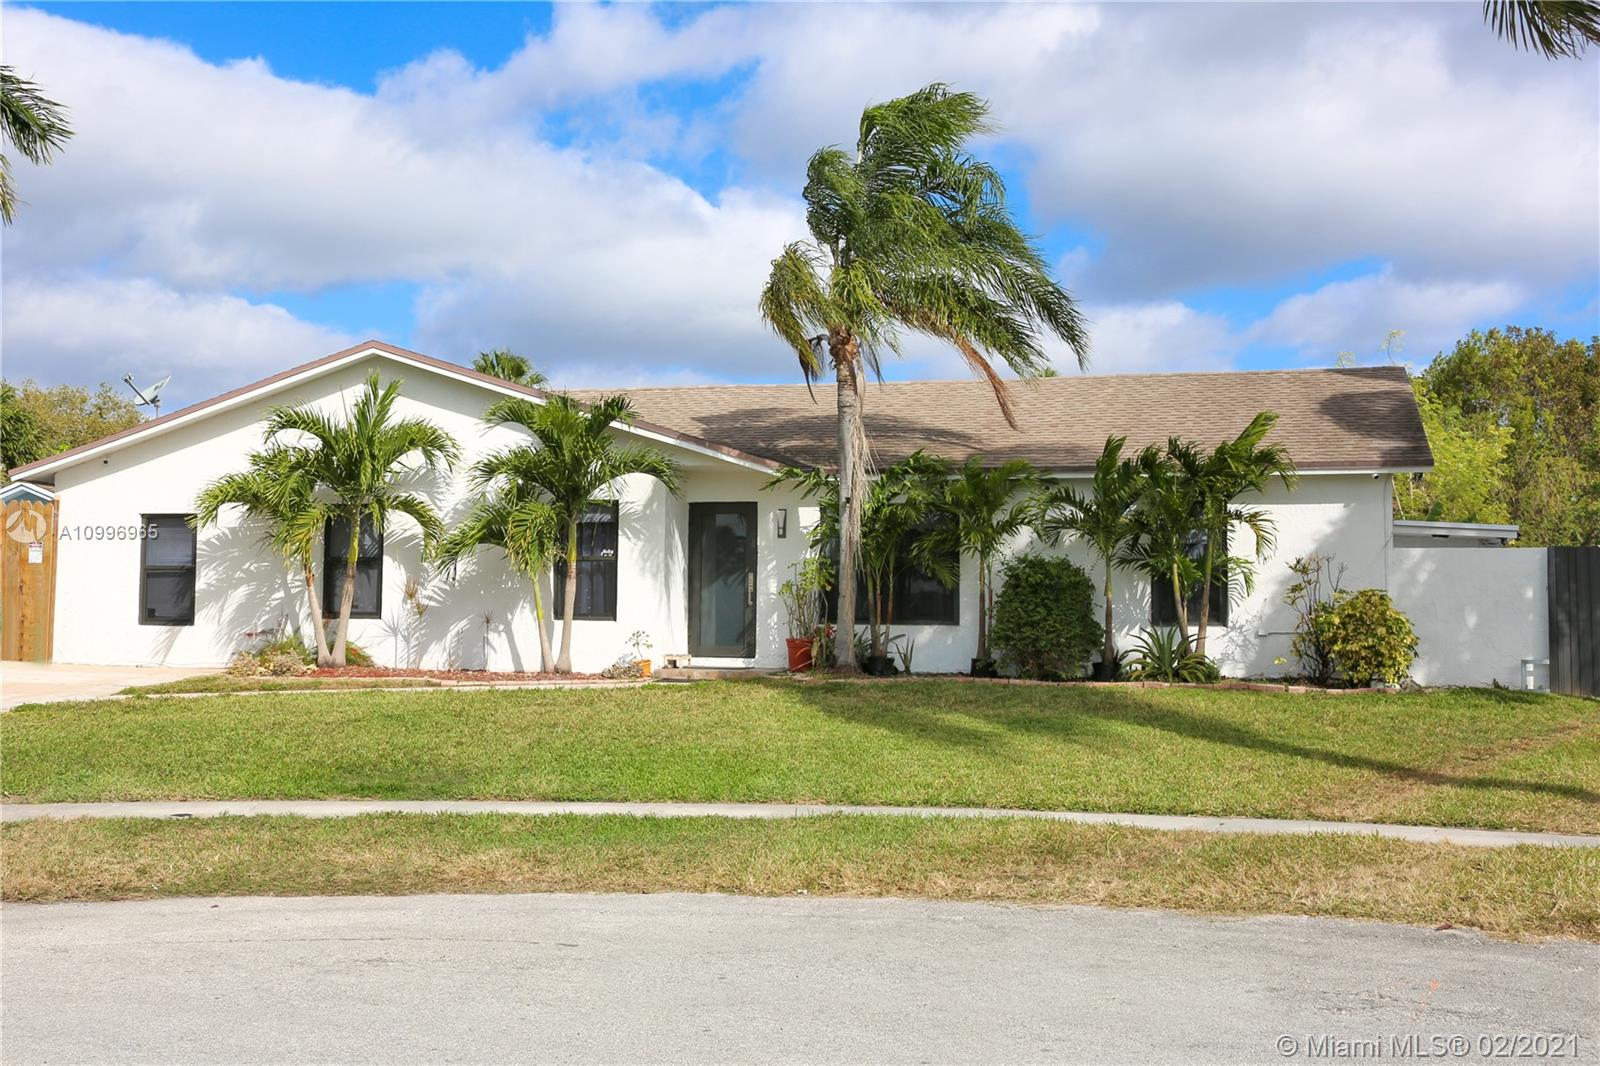 12315 Sw 255th Ter Property Photo